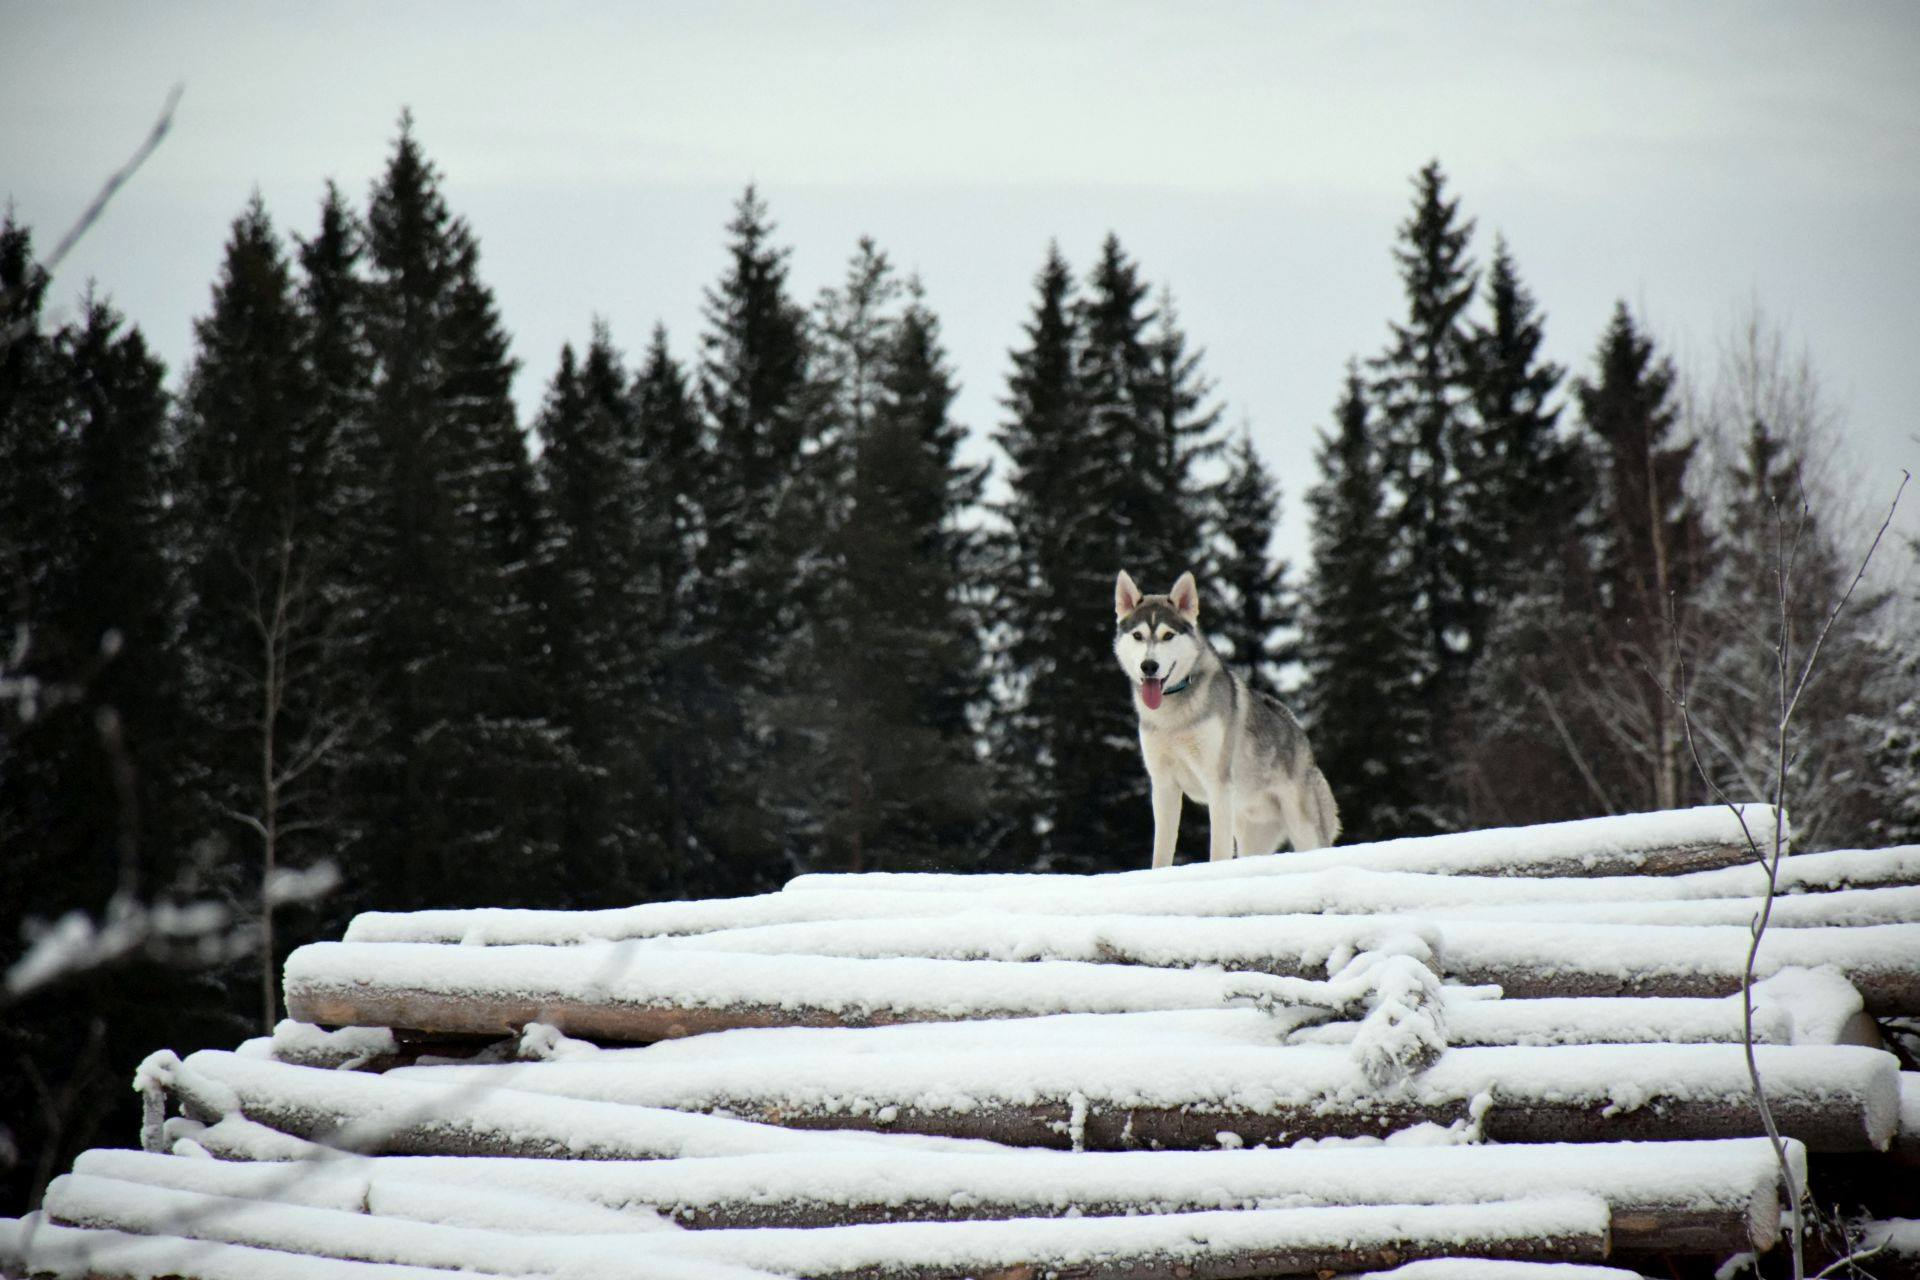 Juha's dog is part wolf